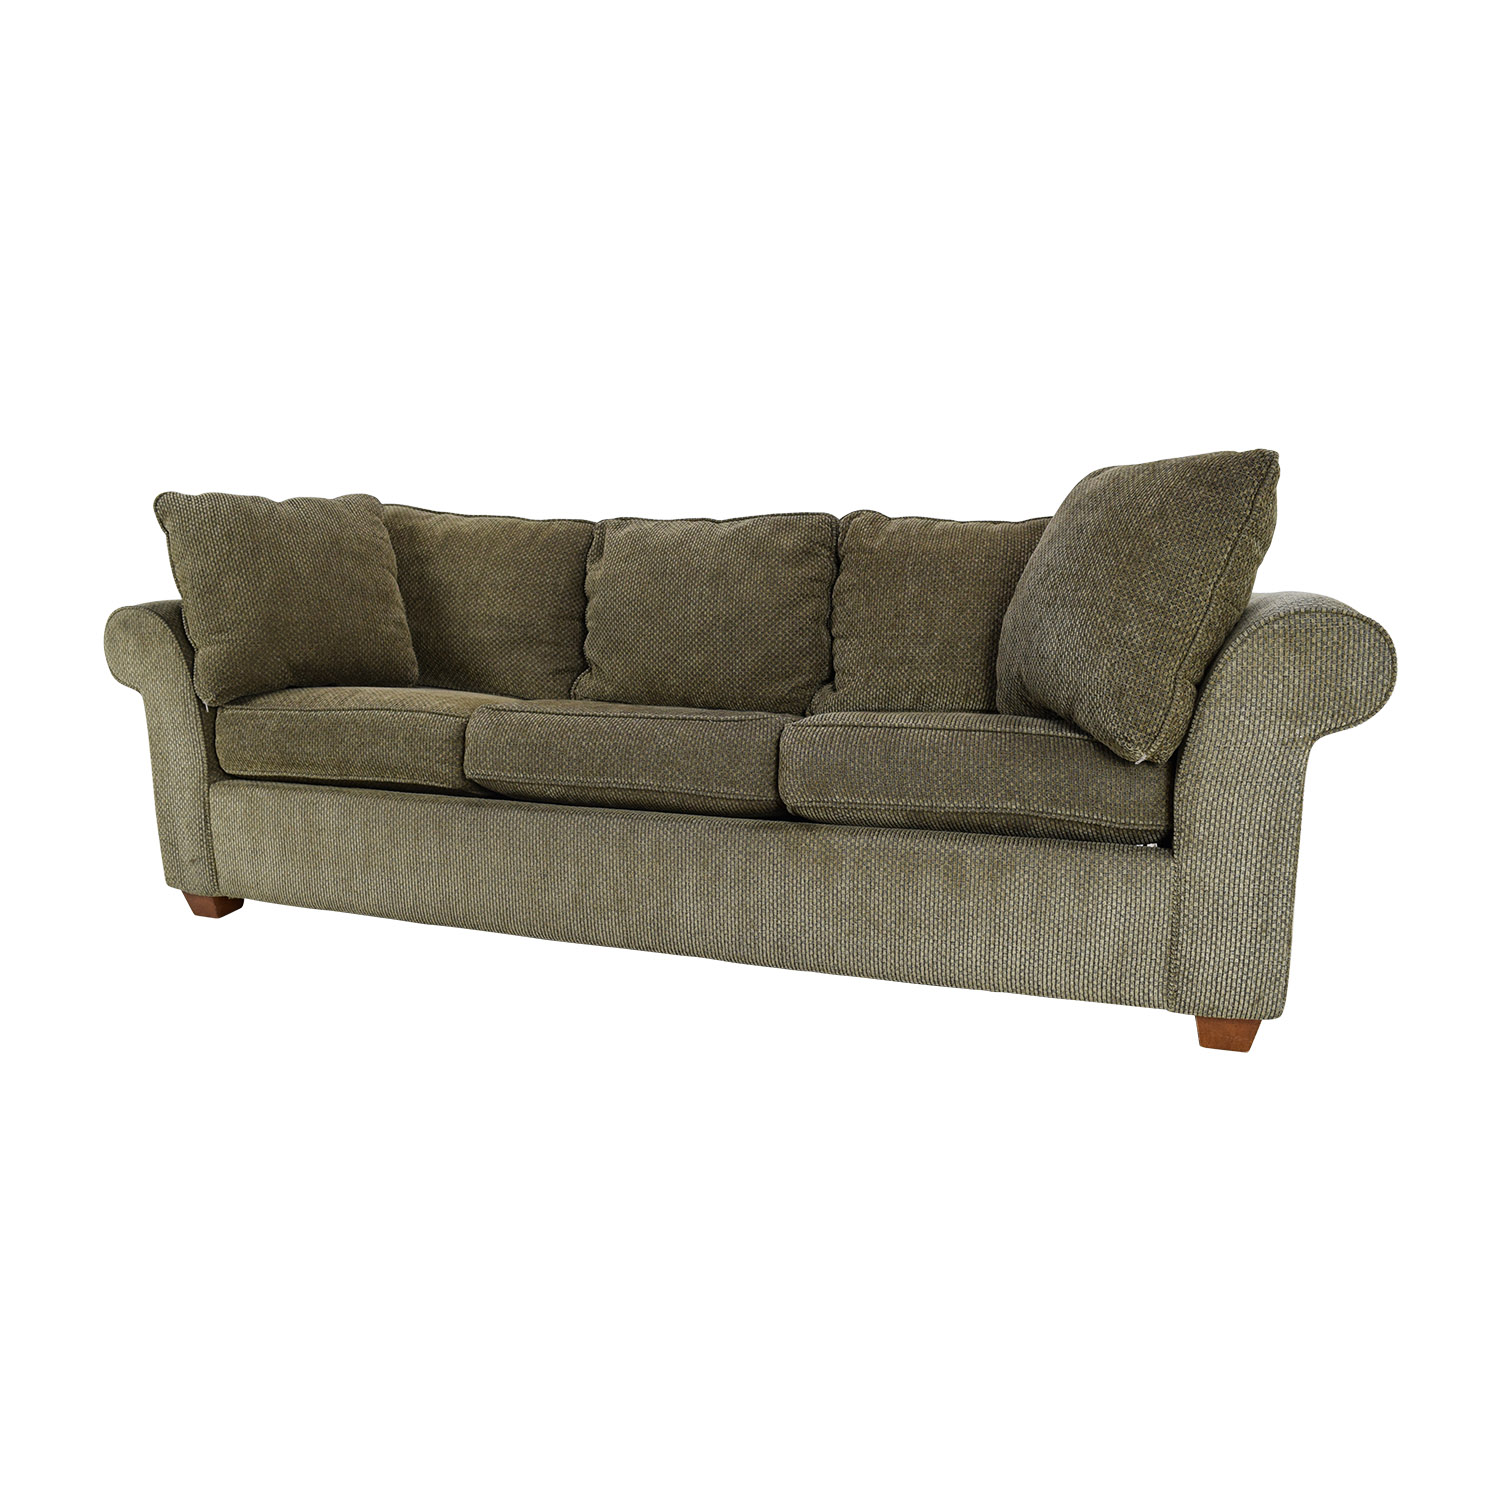 Bloomingdales Sofas Elite Leather Archer Sofa Bloomingdale S Thesofa